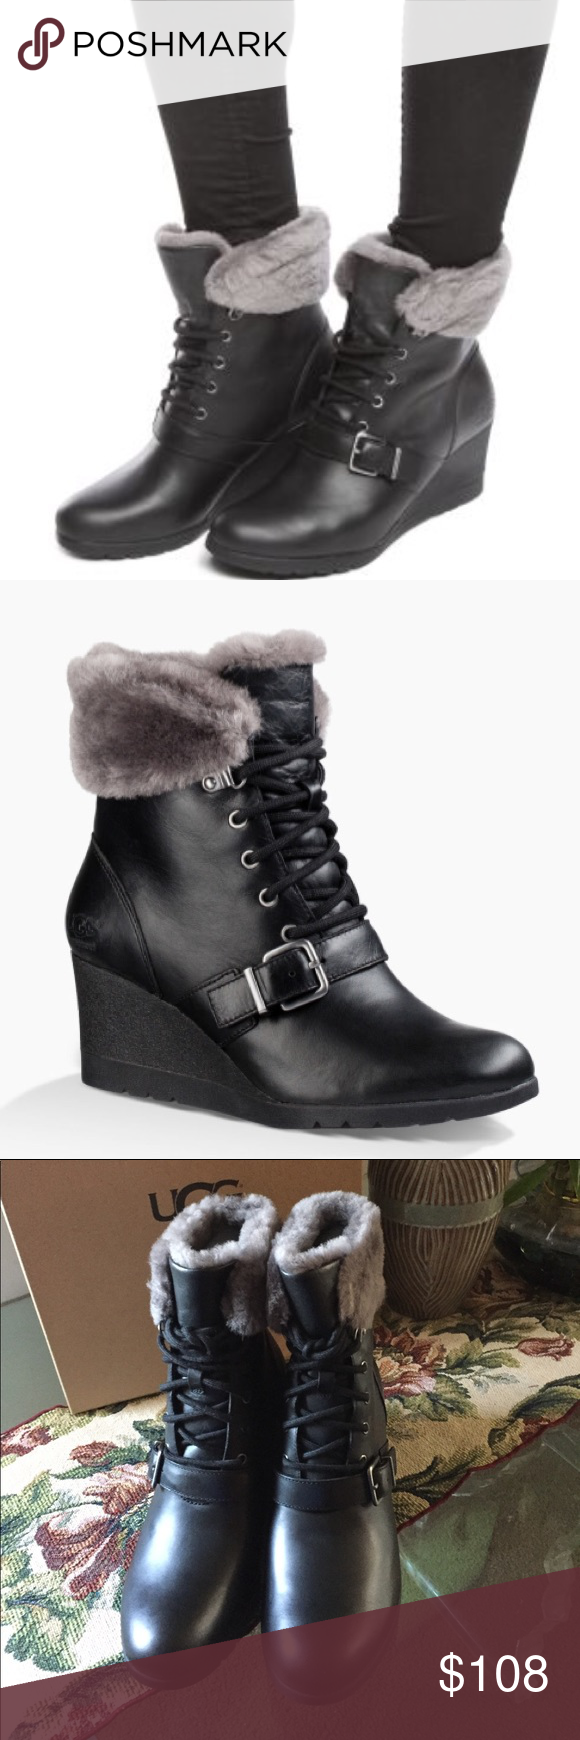 b8199dd63be NEW UGG JANNEY. Model: 1012527 Don't let the rain dampen your ...